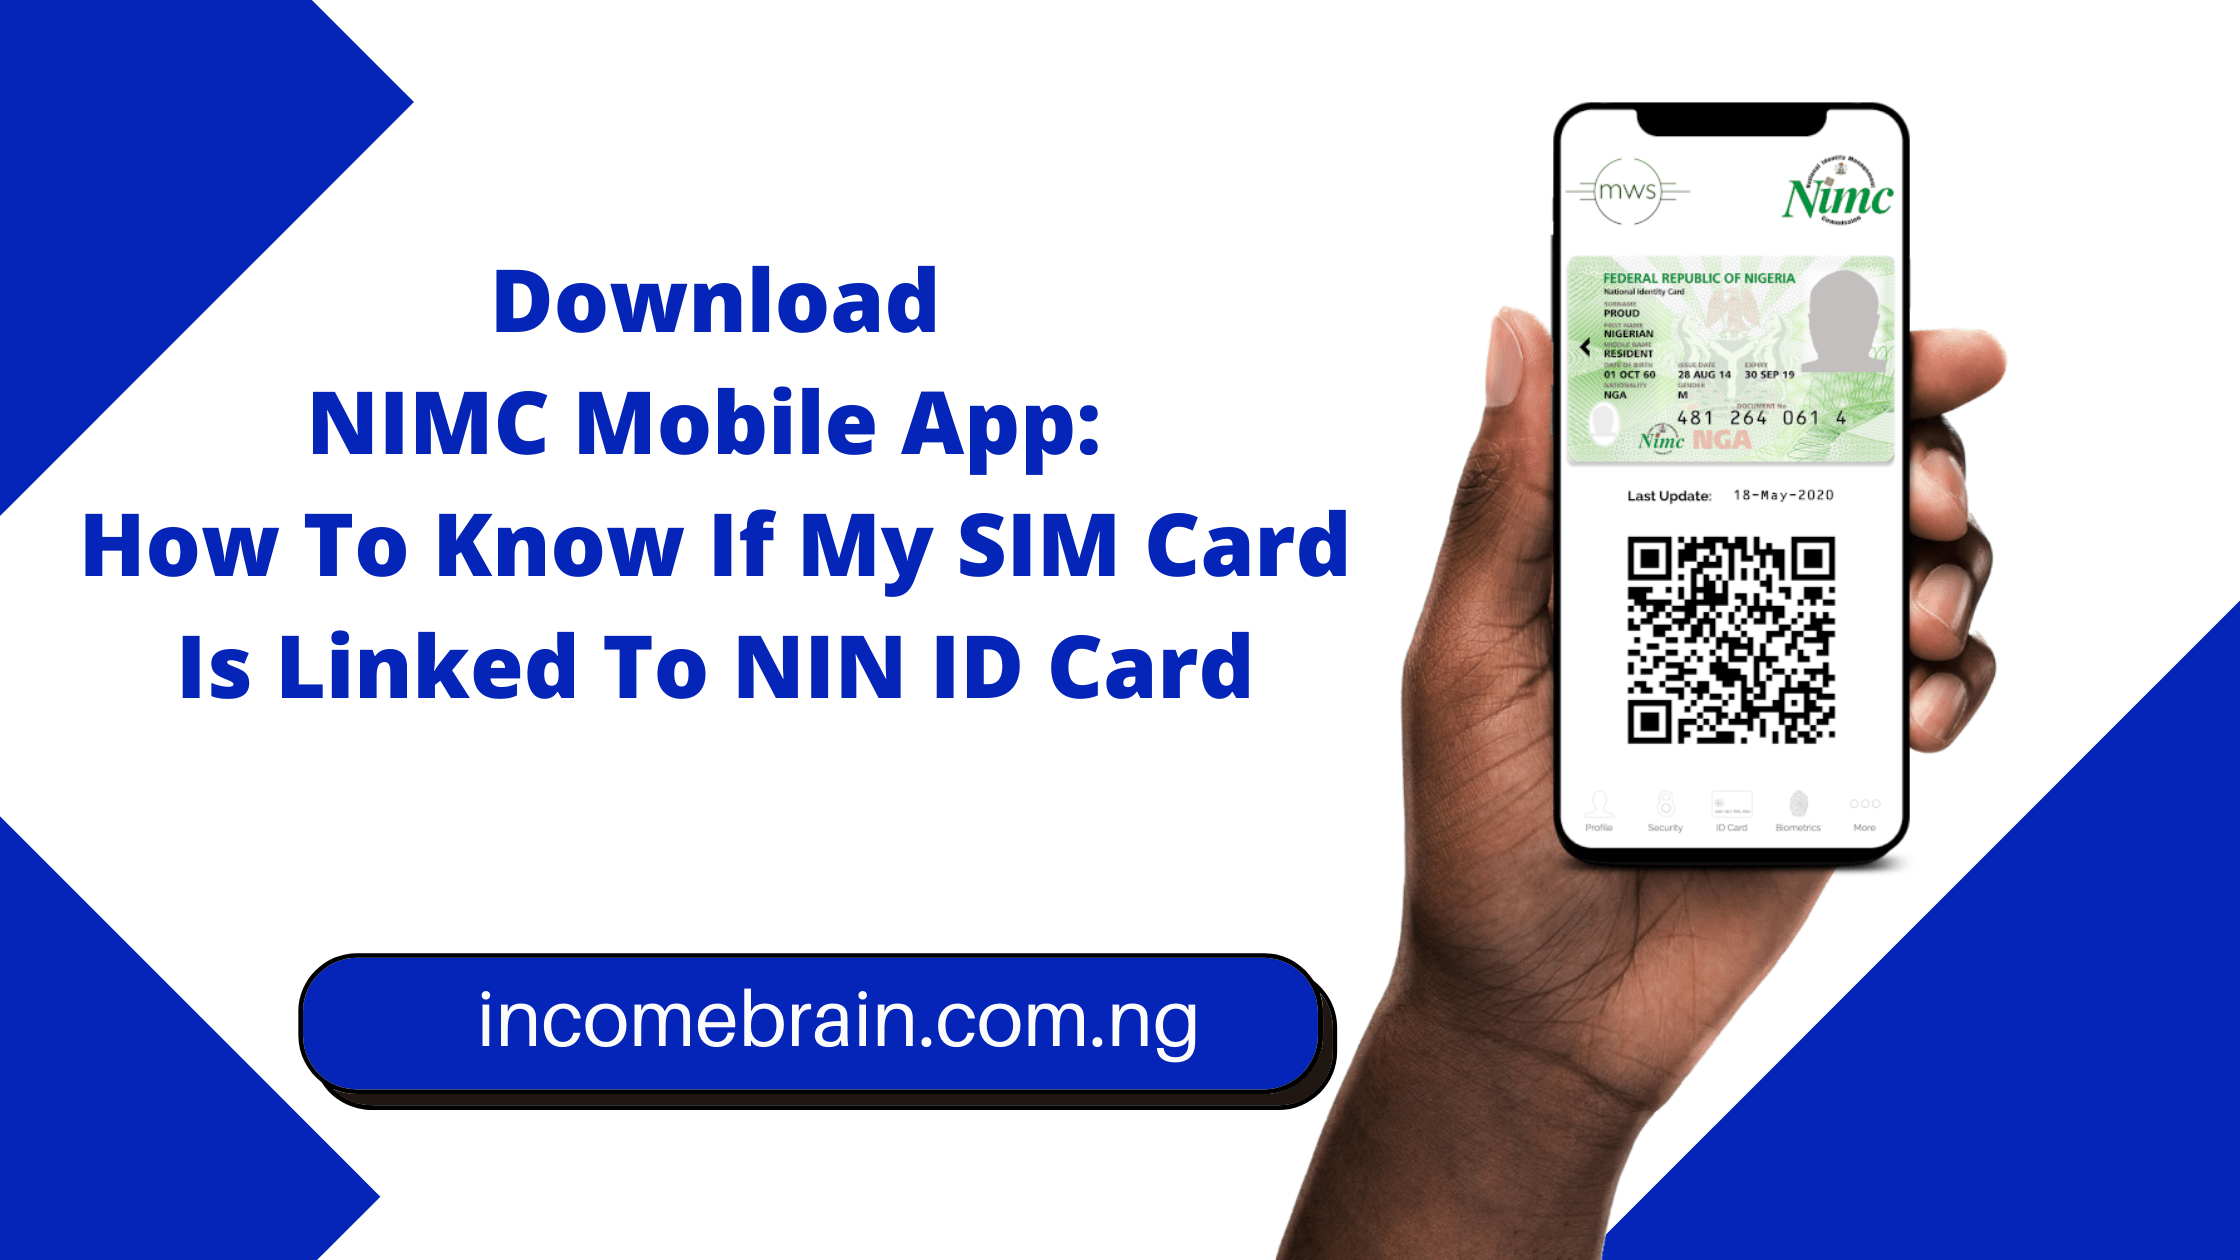 Download NIMC Mobile App: How To Know If My SIM Card Is Linked To NIN ID Card (nimcmobile.app) post thumbnail image